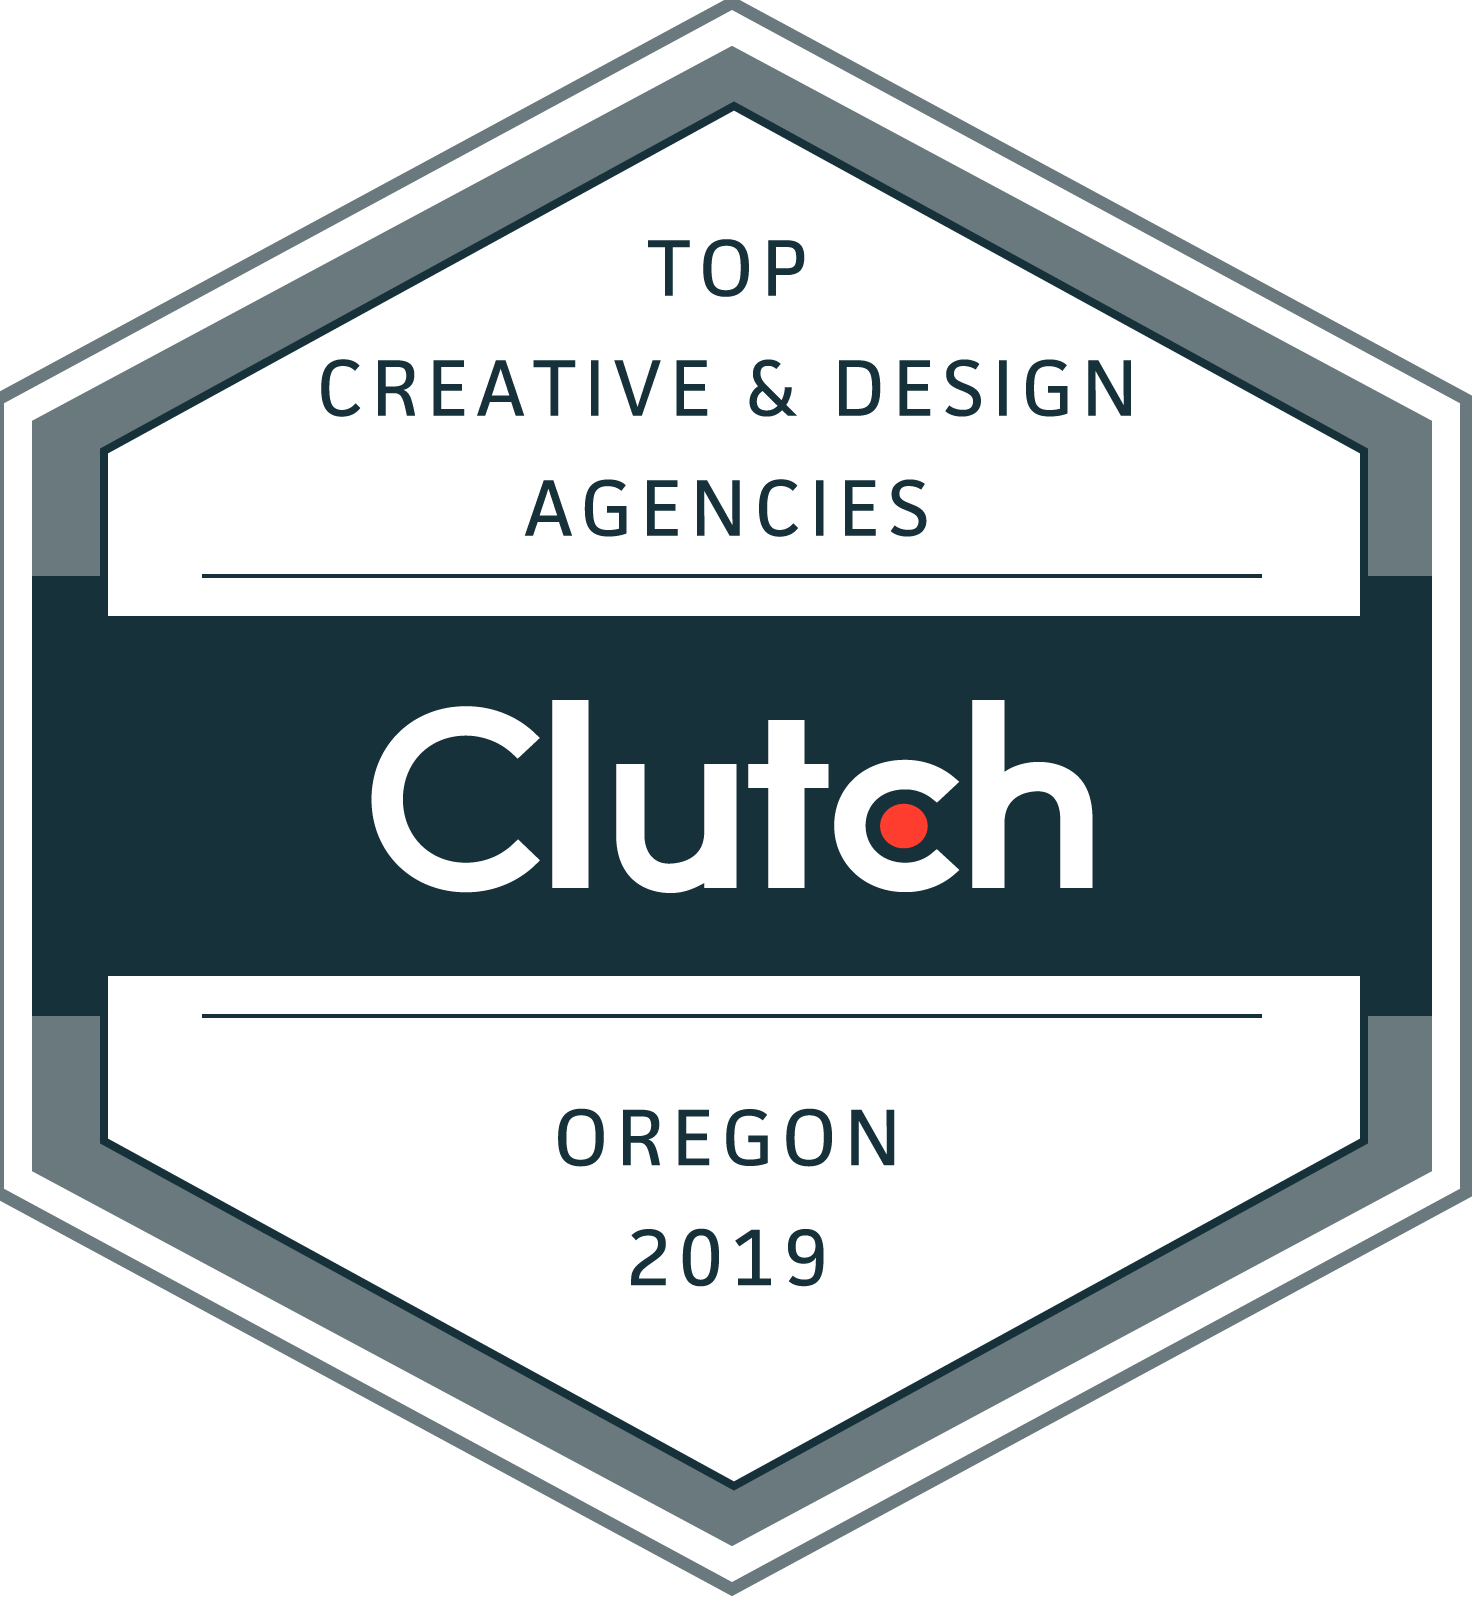 Top Design agency in Oregon 2019